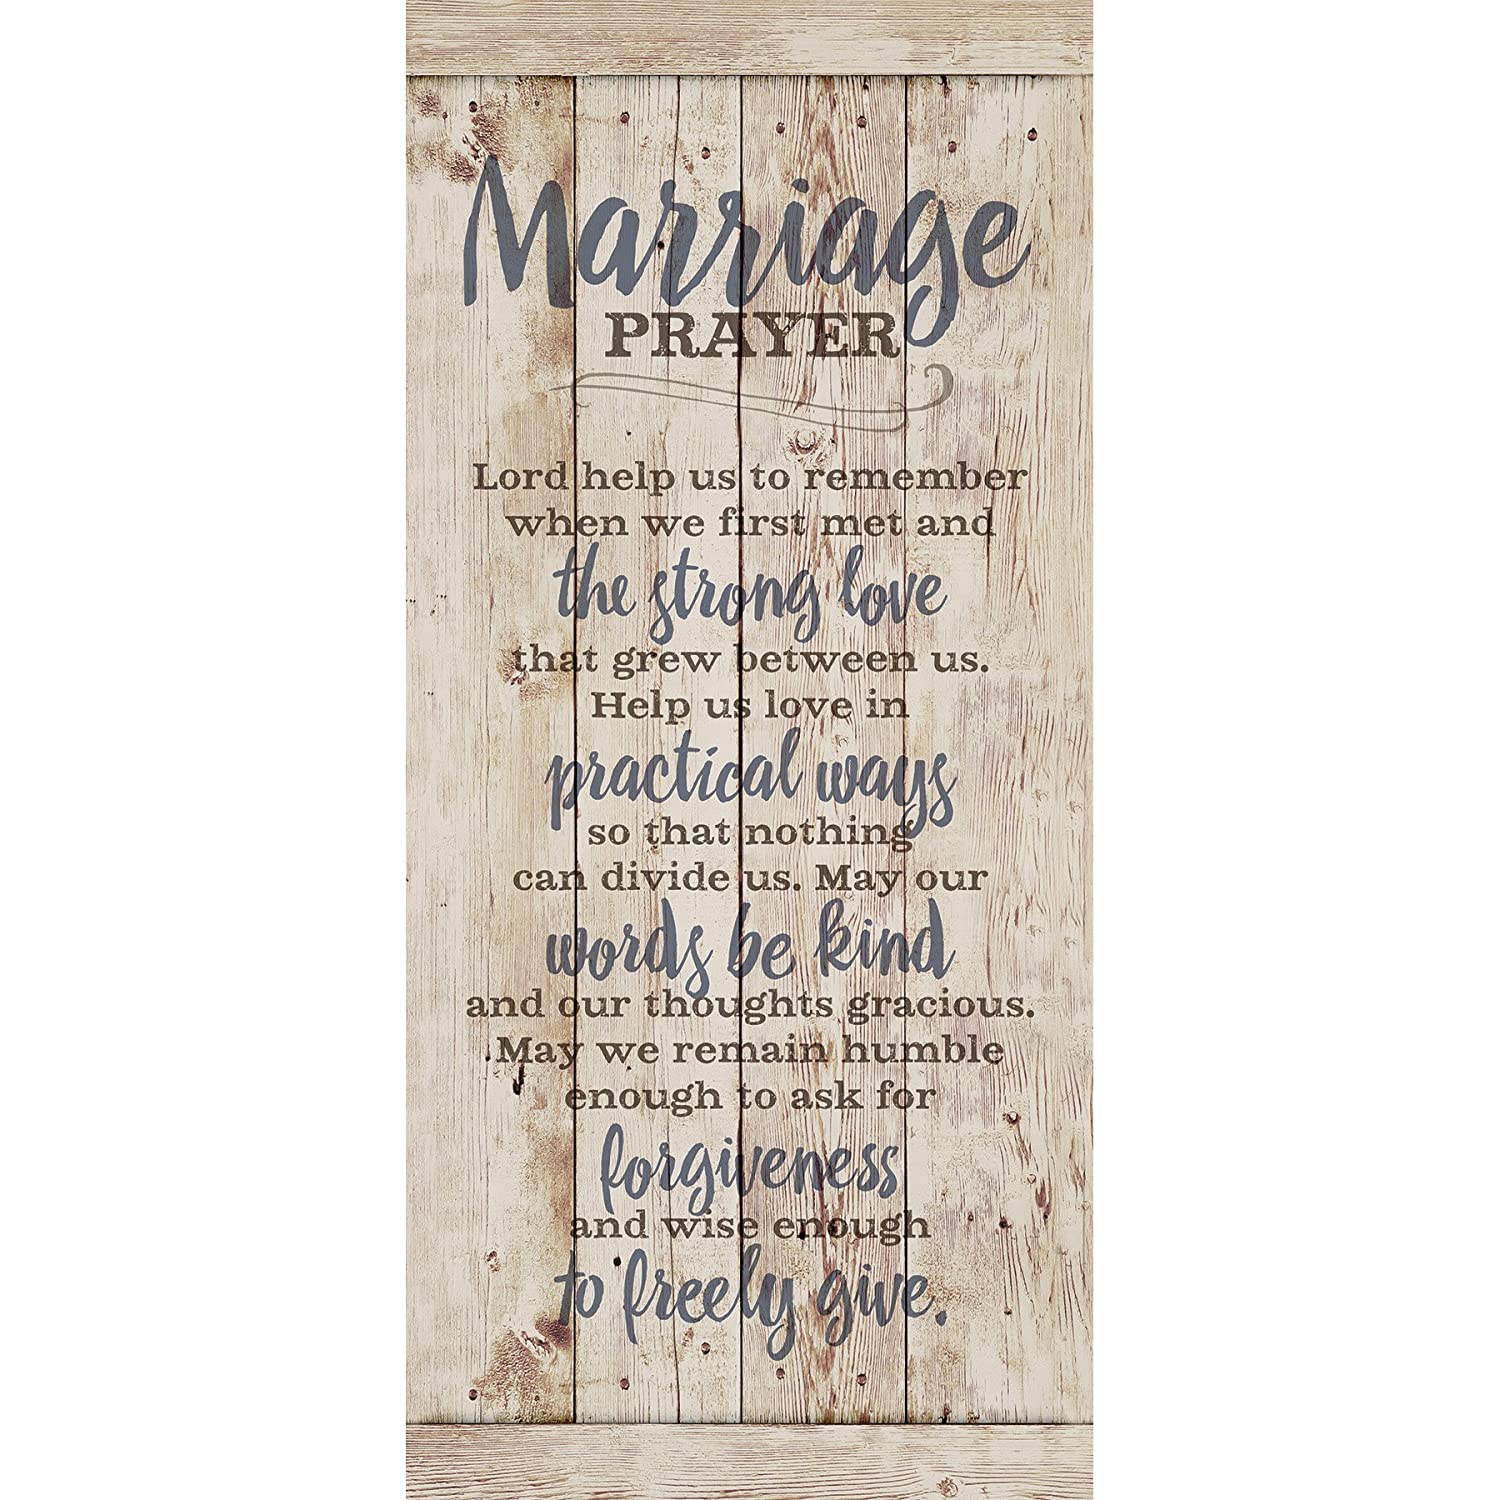 Marriage Prayer Wood Plaque Inspiring Quote 5 5x12 - Classy Vertical Frame  Wall Hanging Decoration | Lord, Help us to Remember When we First met |